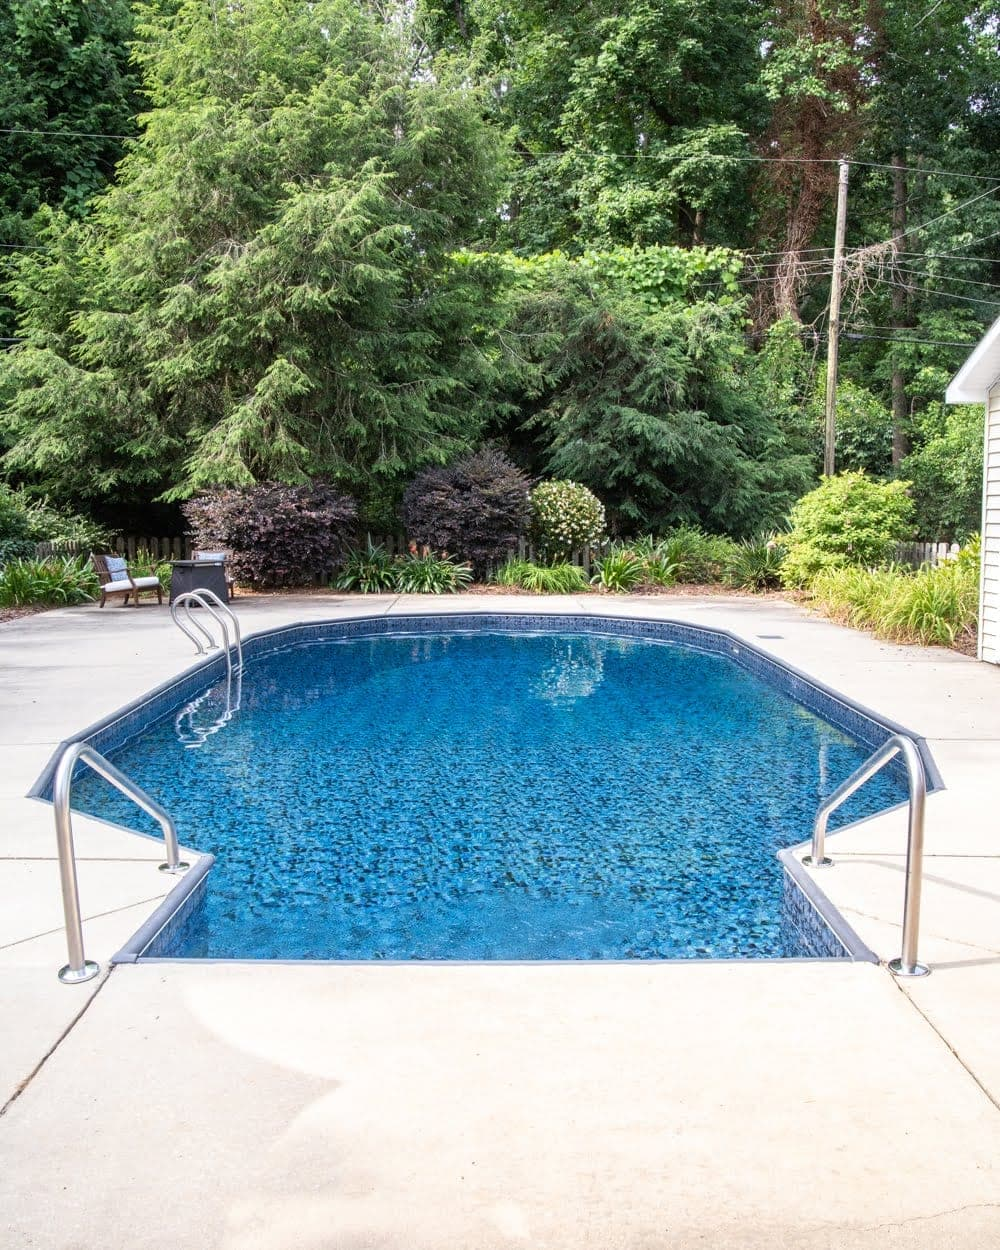 Swimming Pool Liner Makeover Reveal | vinyl pool liner from GLI Pool Products TrueStone Collection - Obsidian